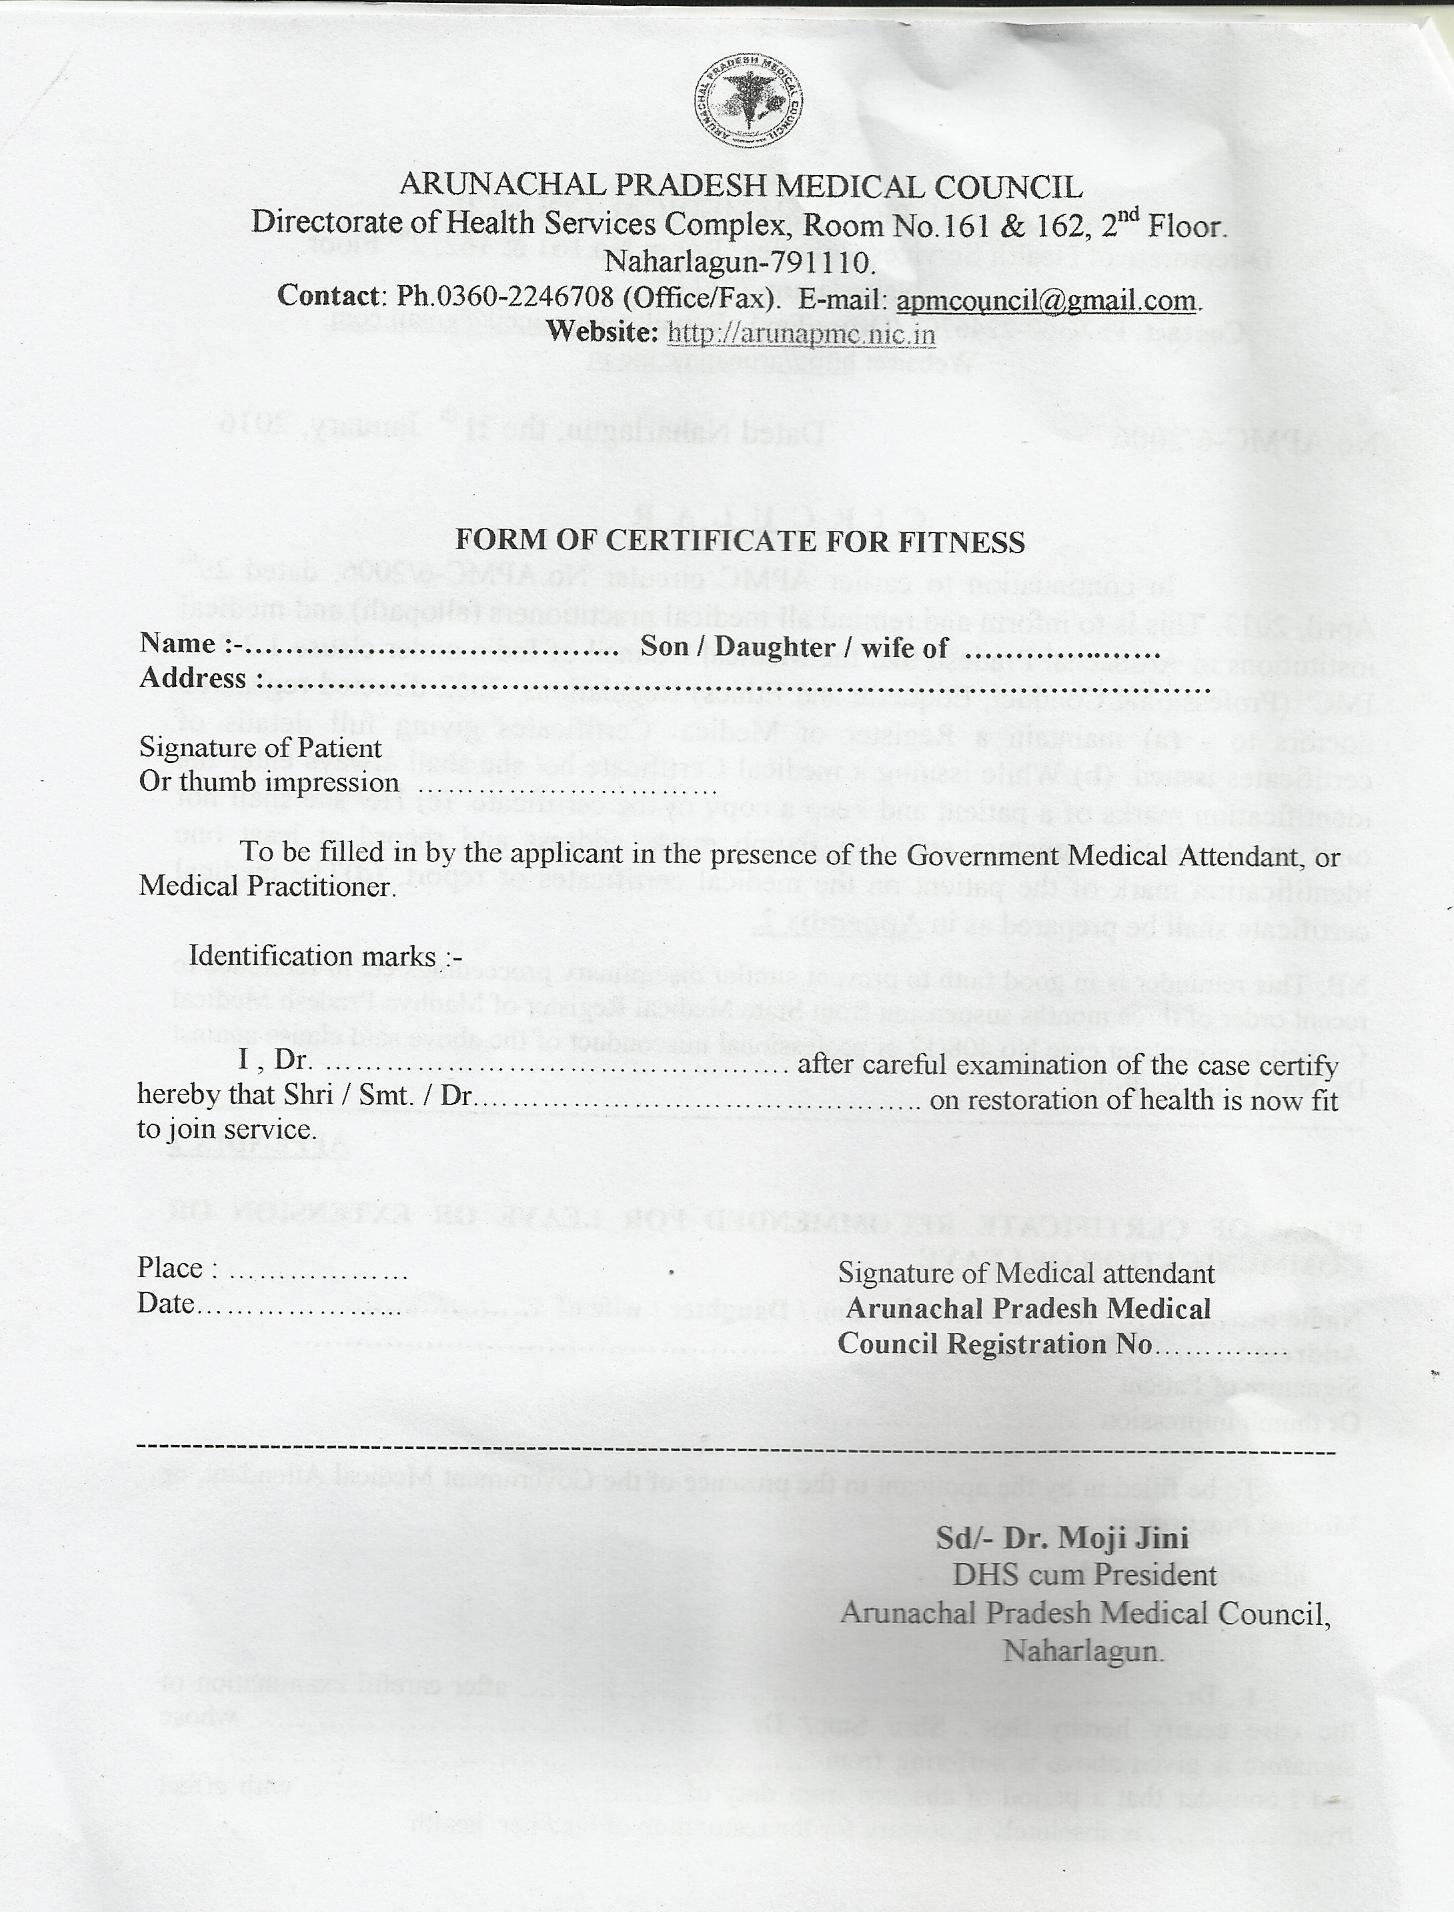 Website of arunachal pradesh medical council circular form of certificate of fitness yelopaper Images